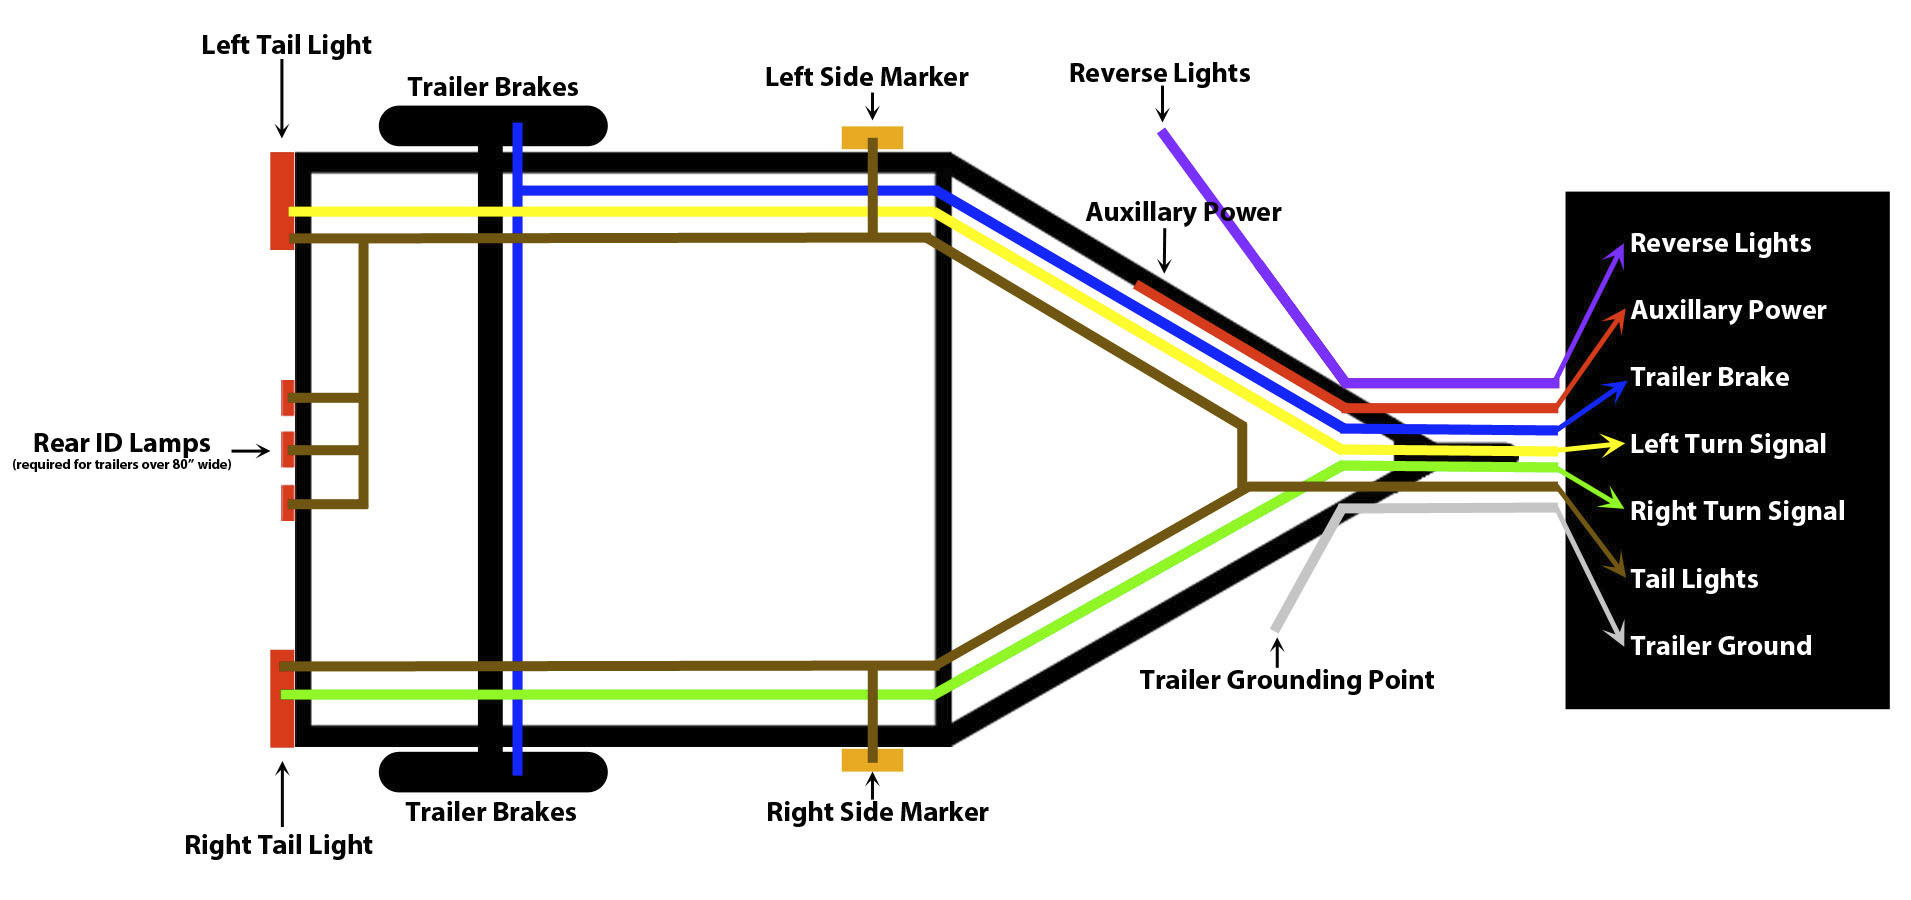 How To Wire Trailer Lights - Trailer Wiring Guide & Videos - Trailer Wiring Diagram With Reverse Light